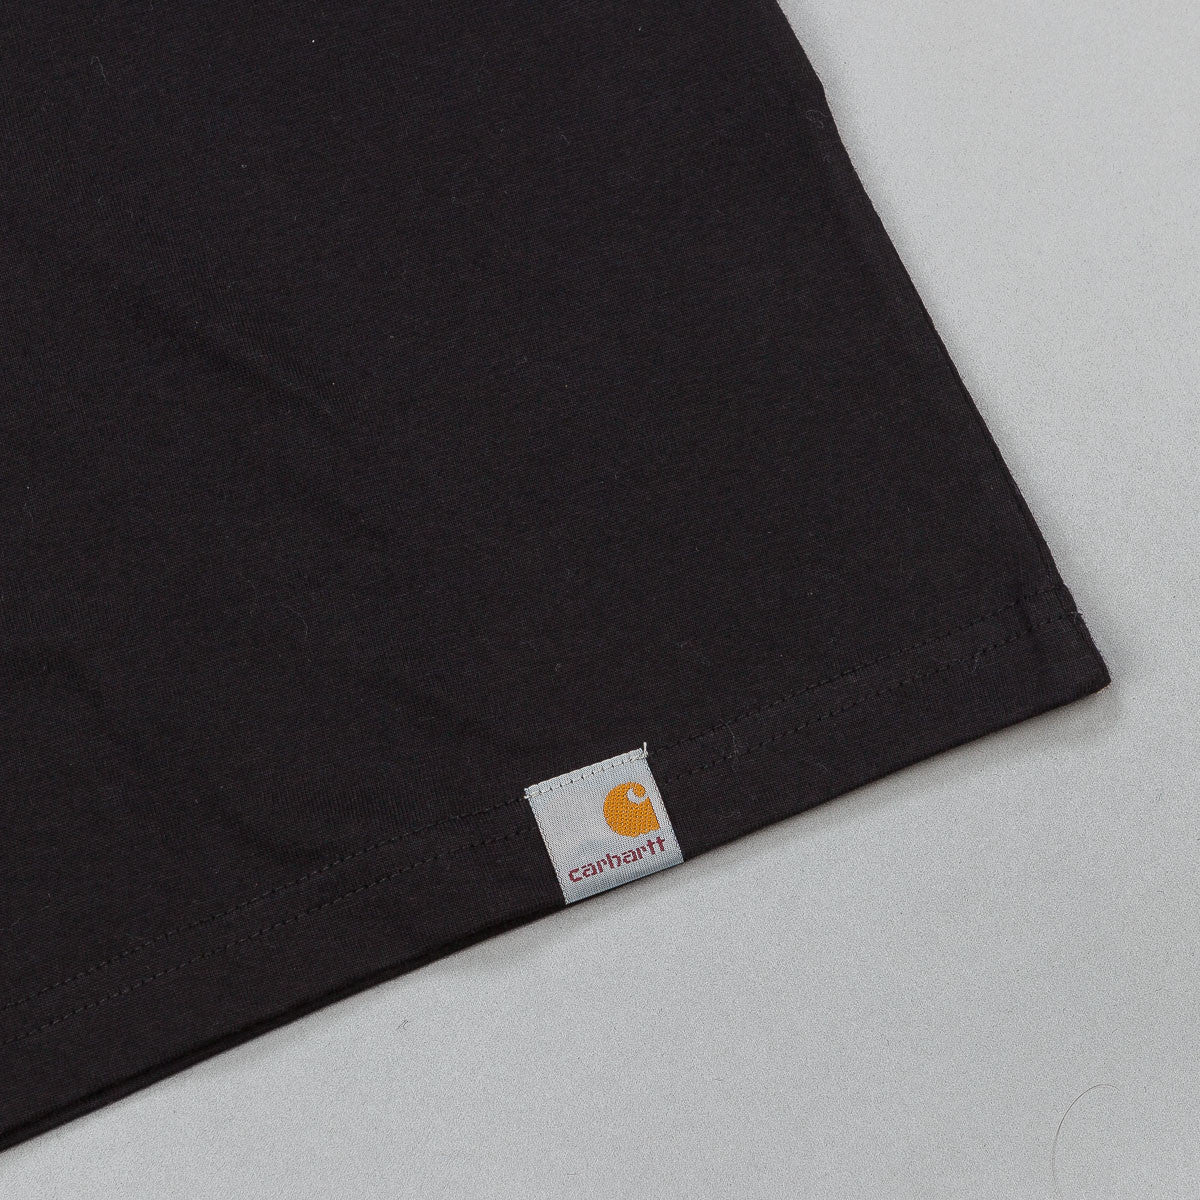 Carhartt Escape T-Shirt - Black / White